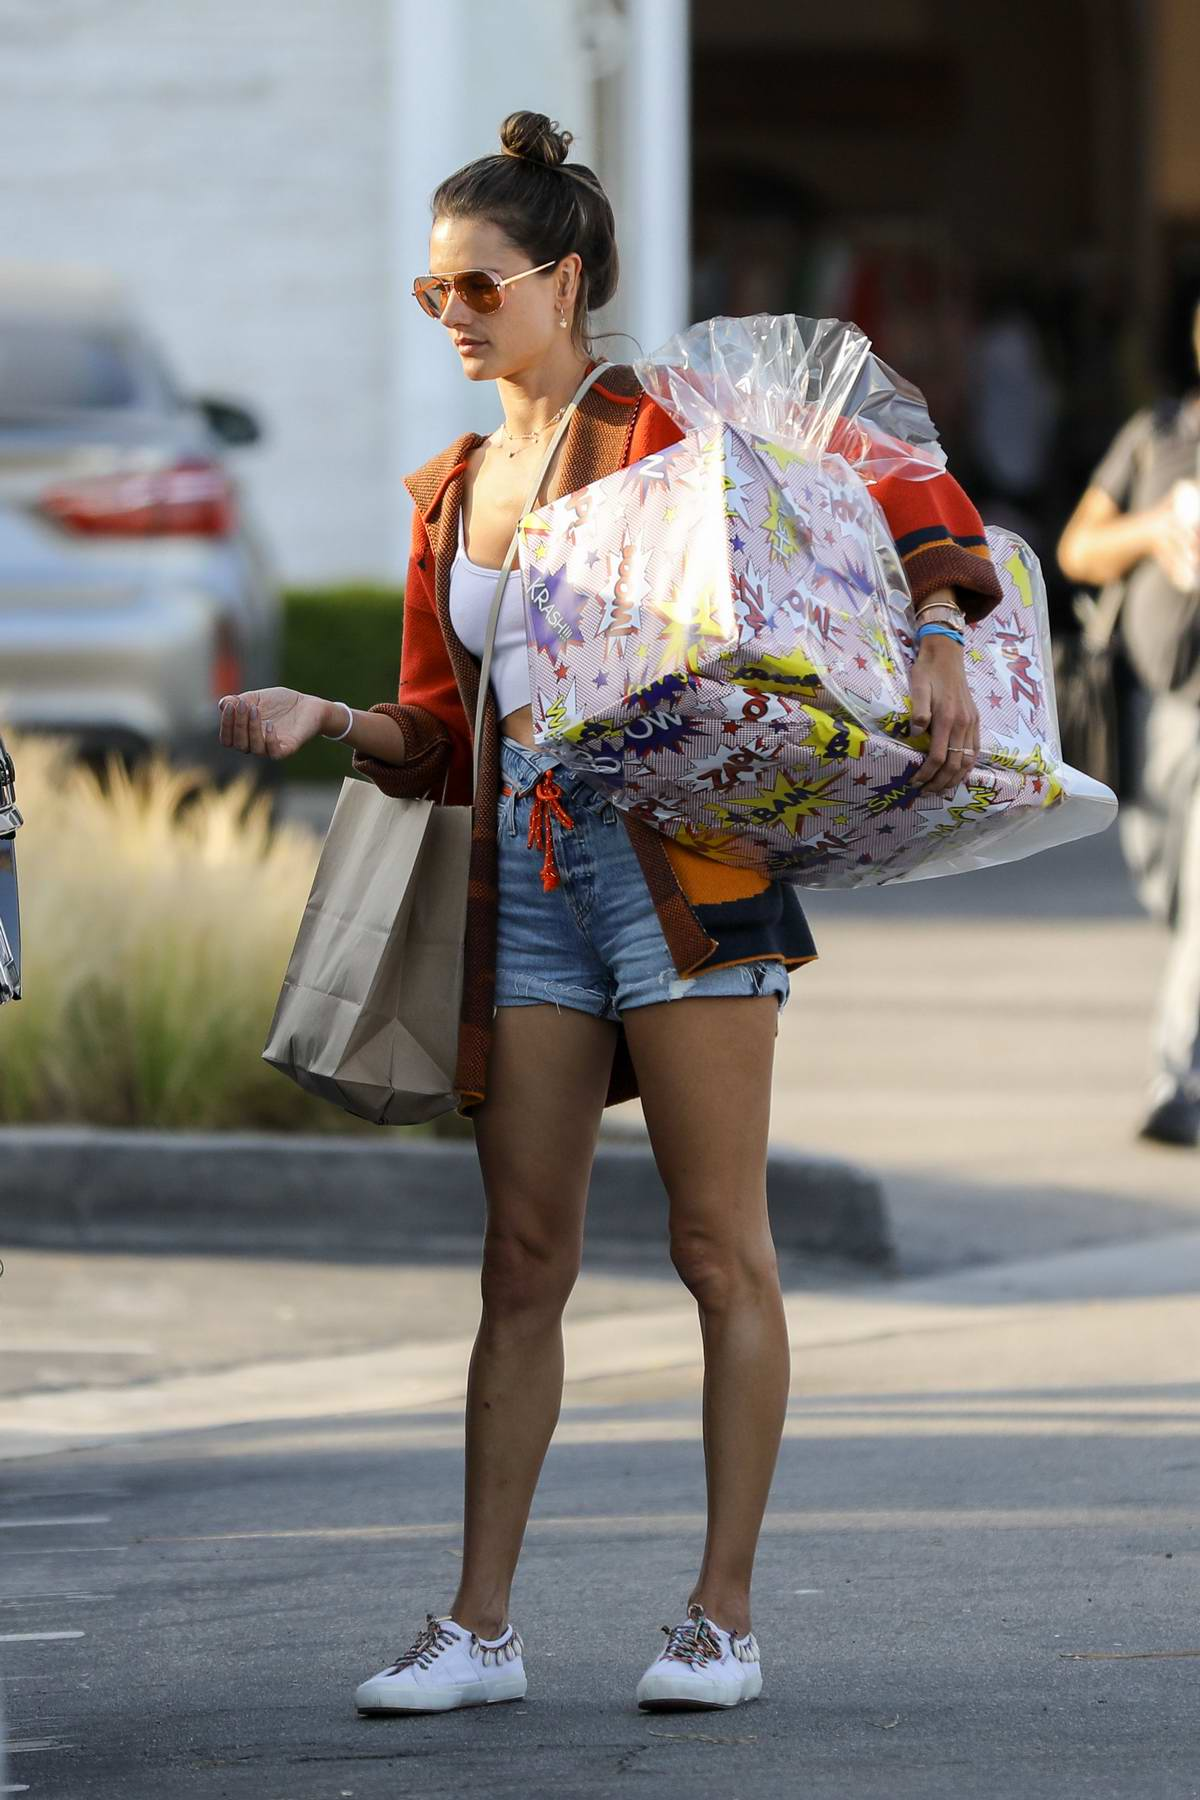 Alessandra Ambrosio steps out in denim shorts and a colorful vest for some shopping with her son in Malibu, California